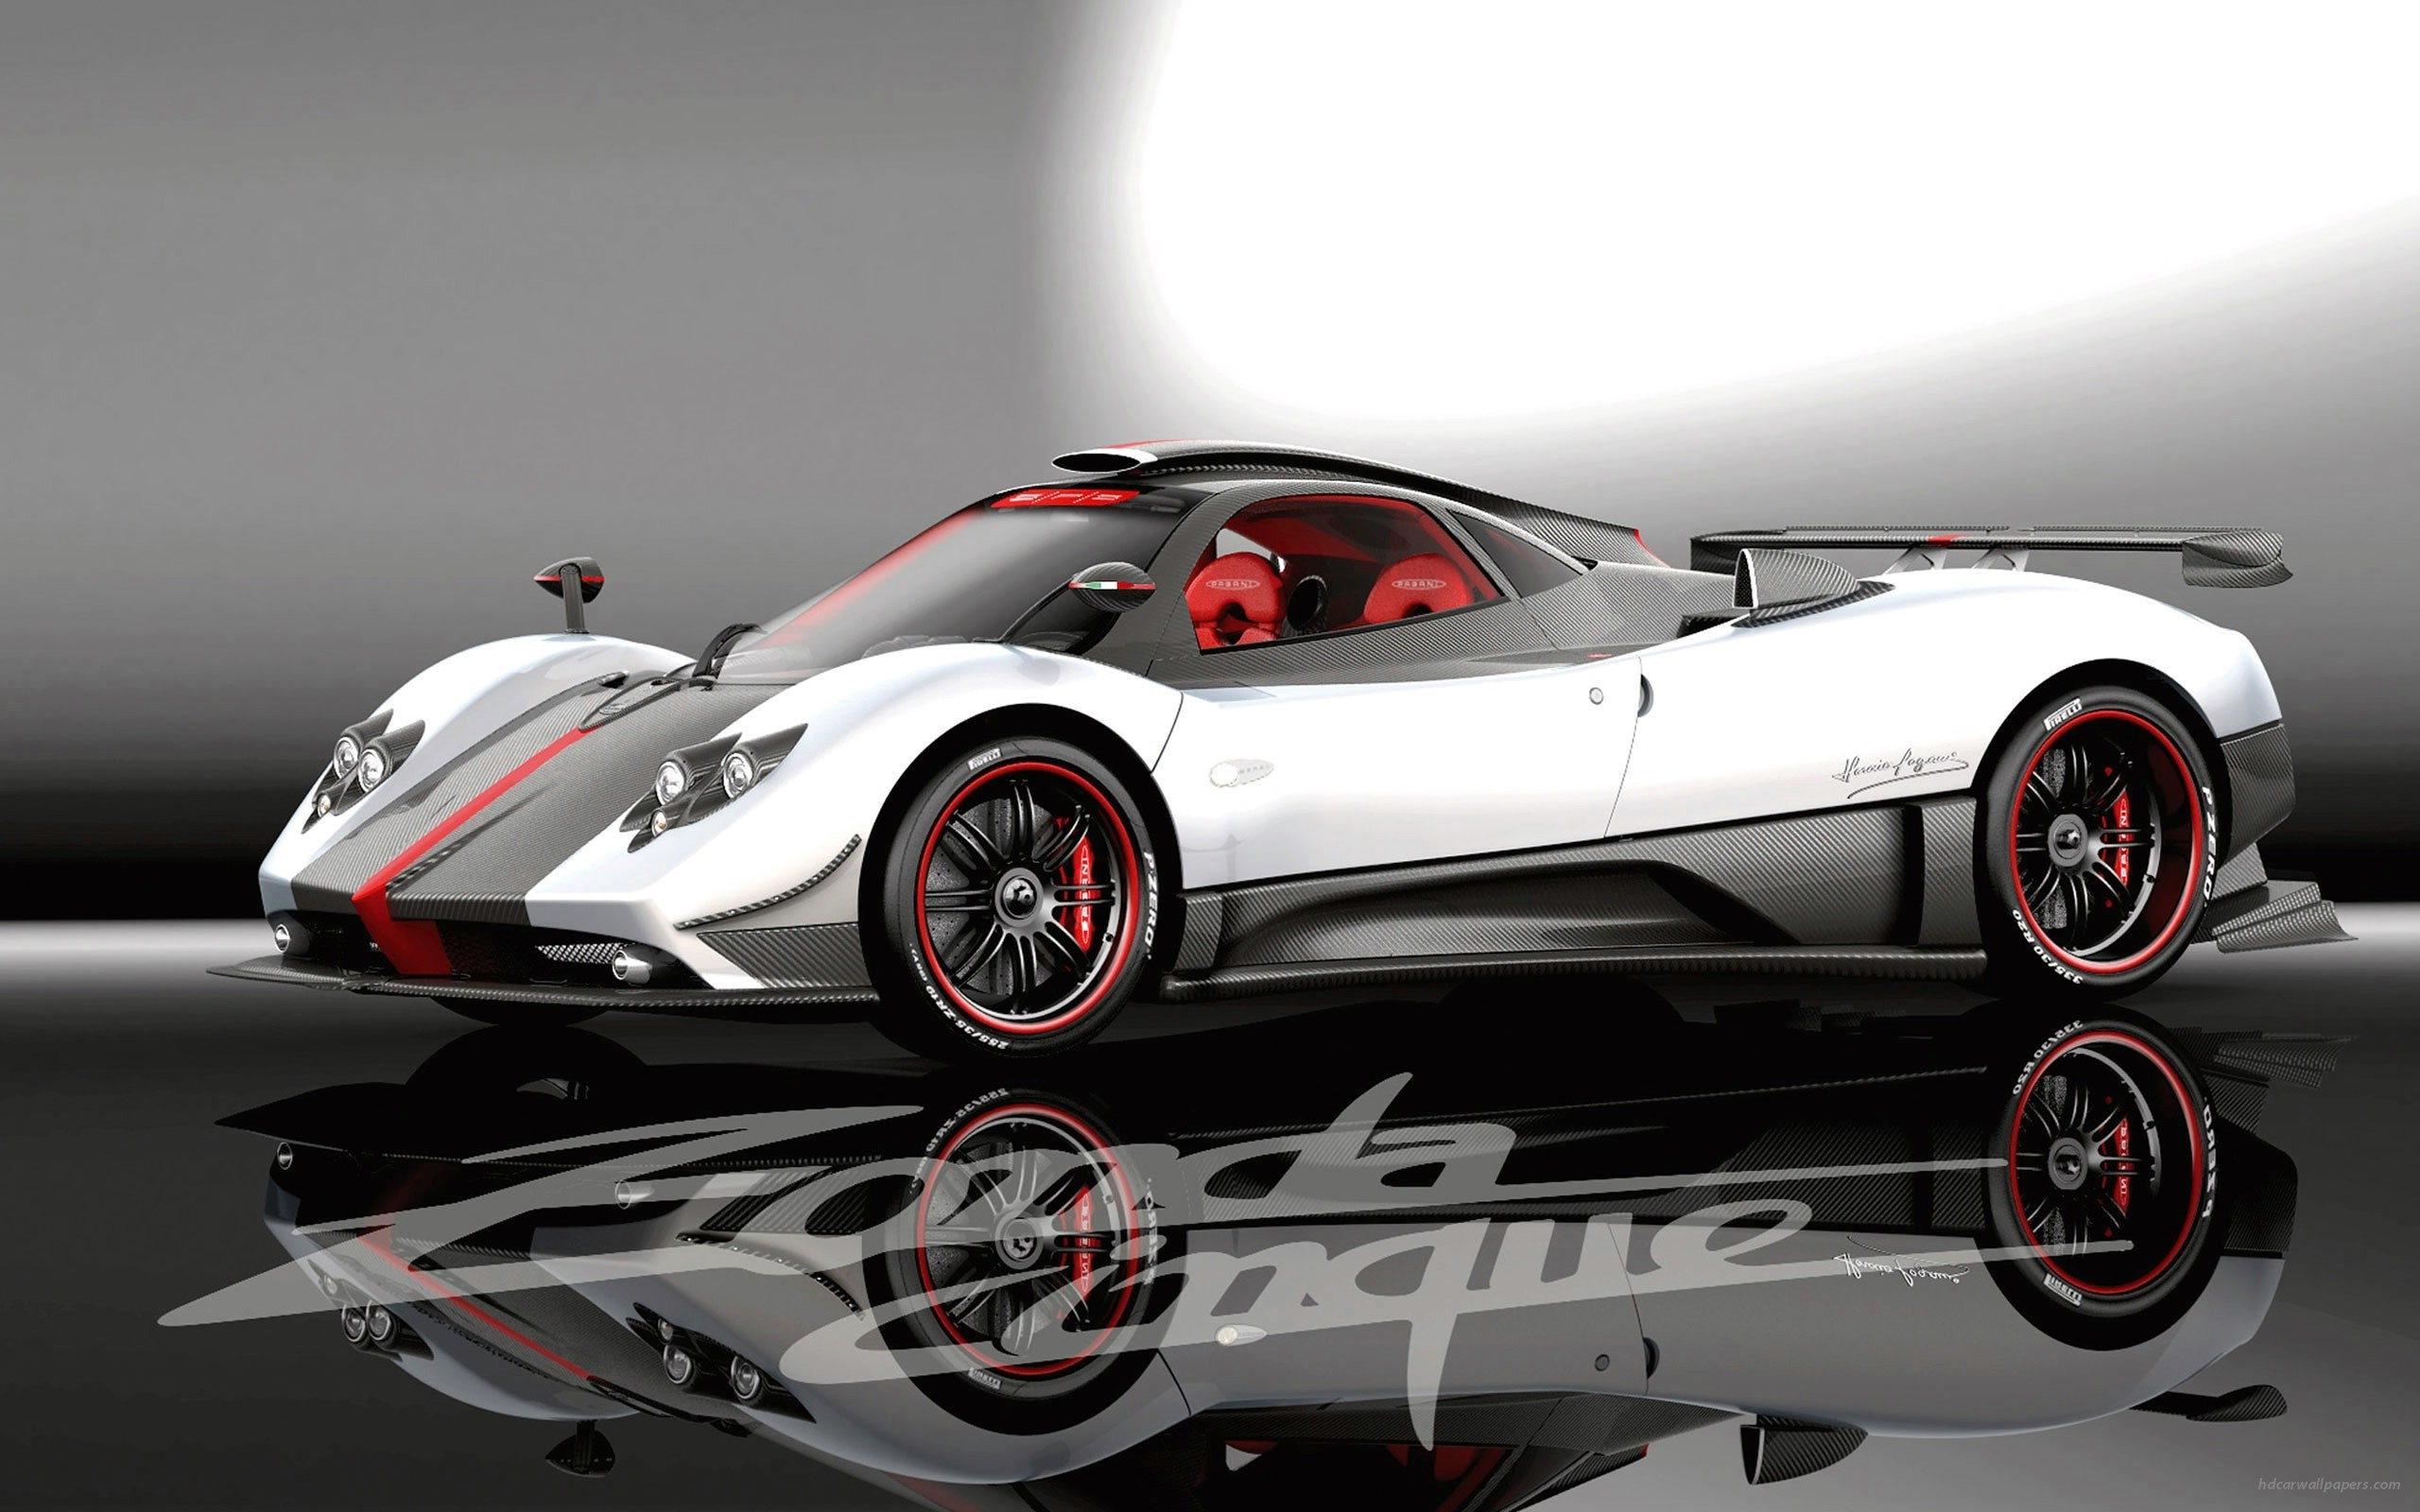 Pagani Zonda Cinque Super Fast Car in 2560x1600 Resolution 2560x1600